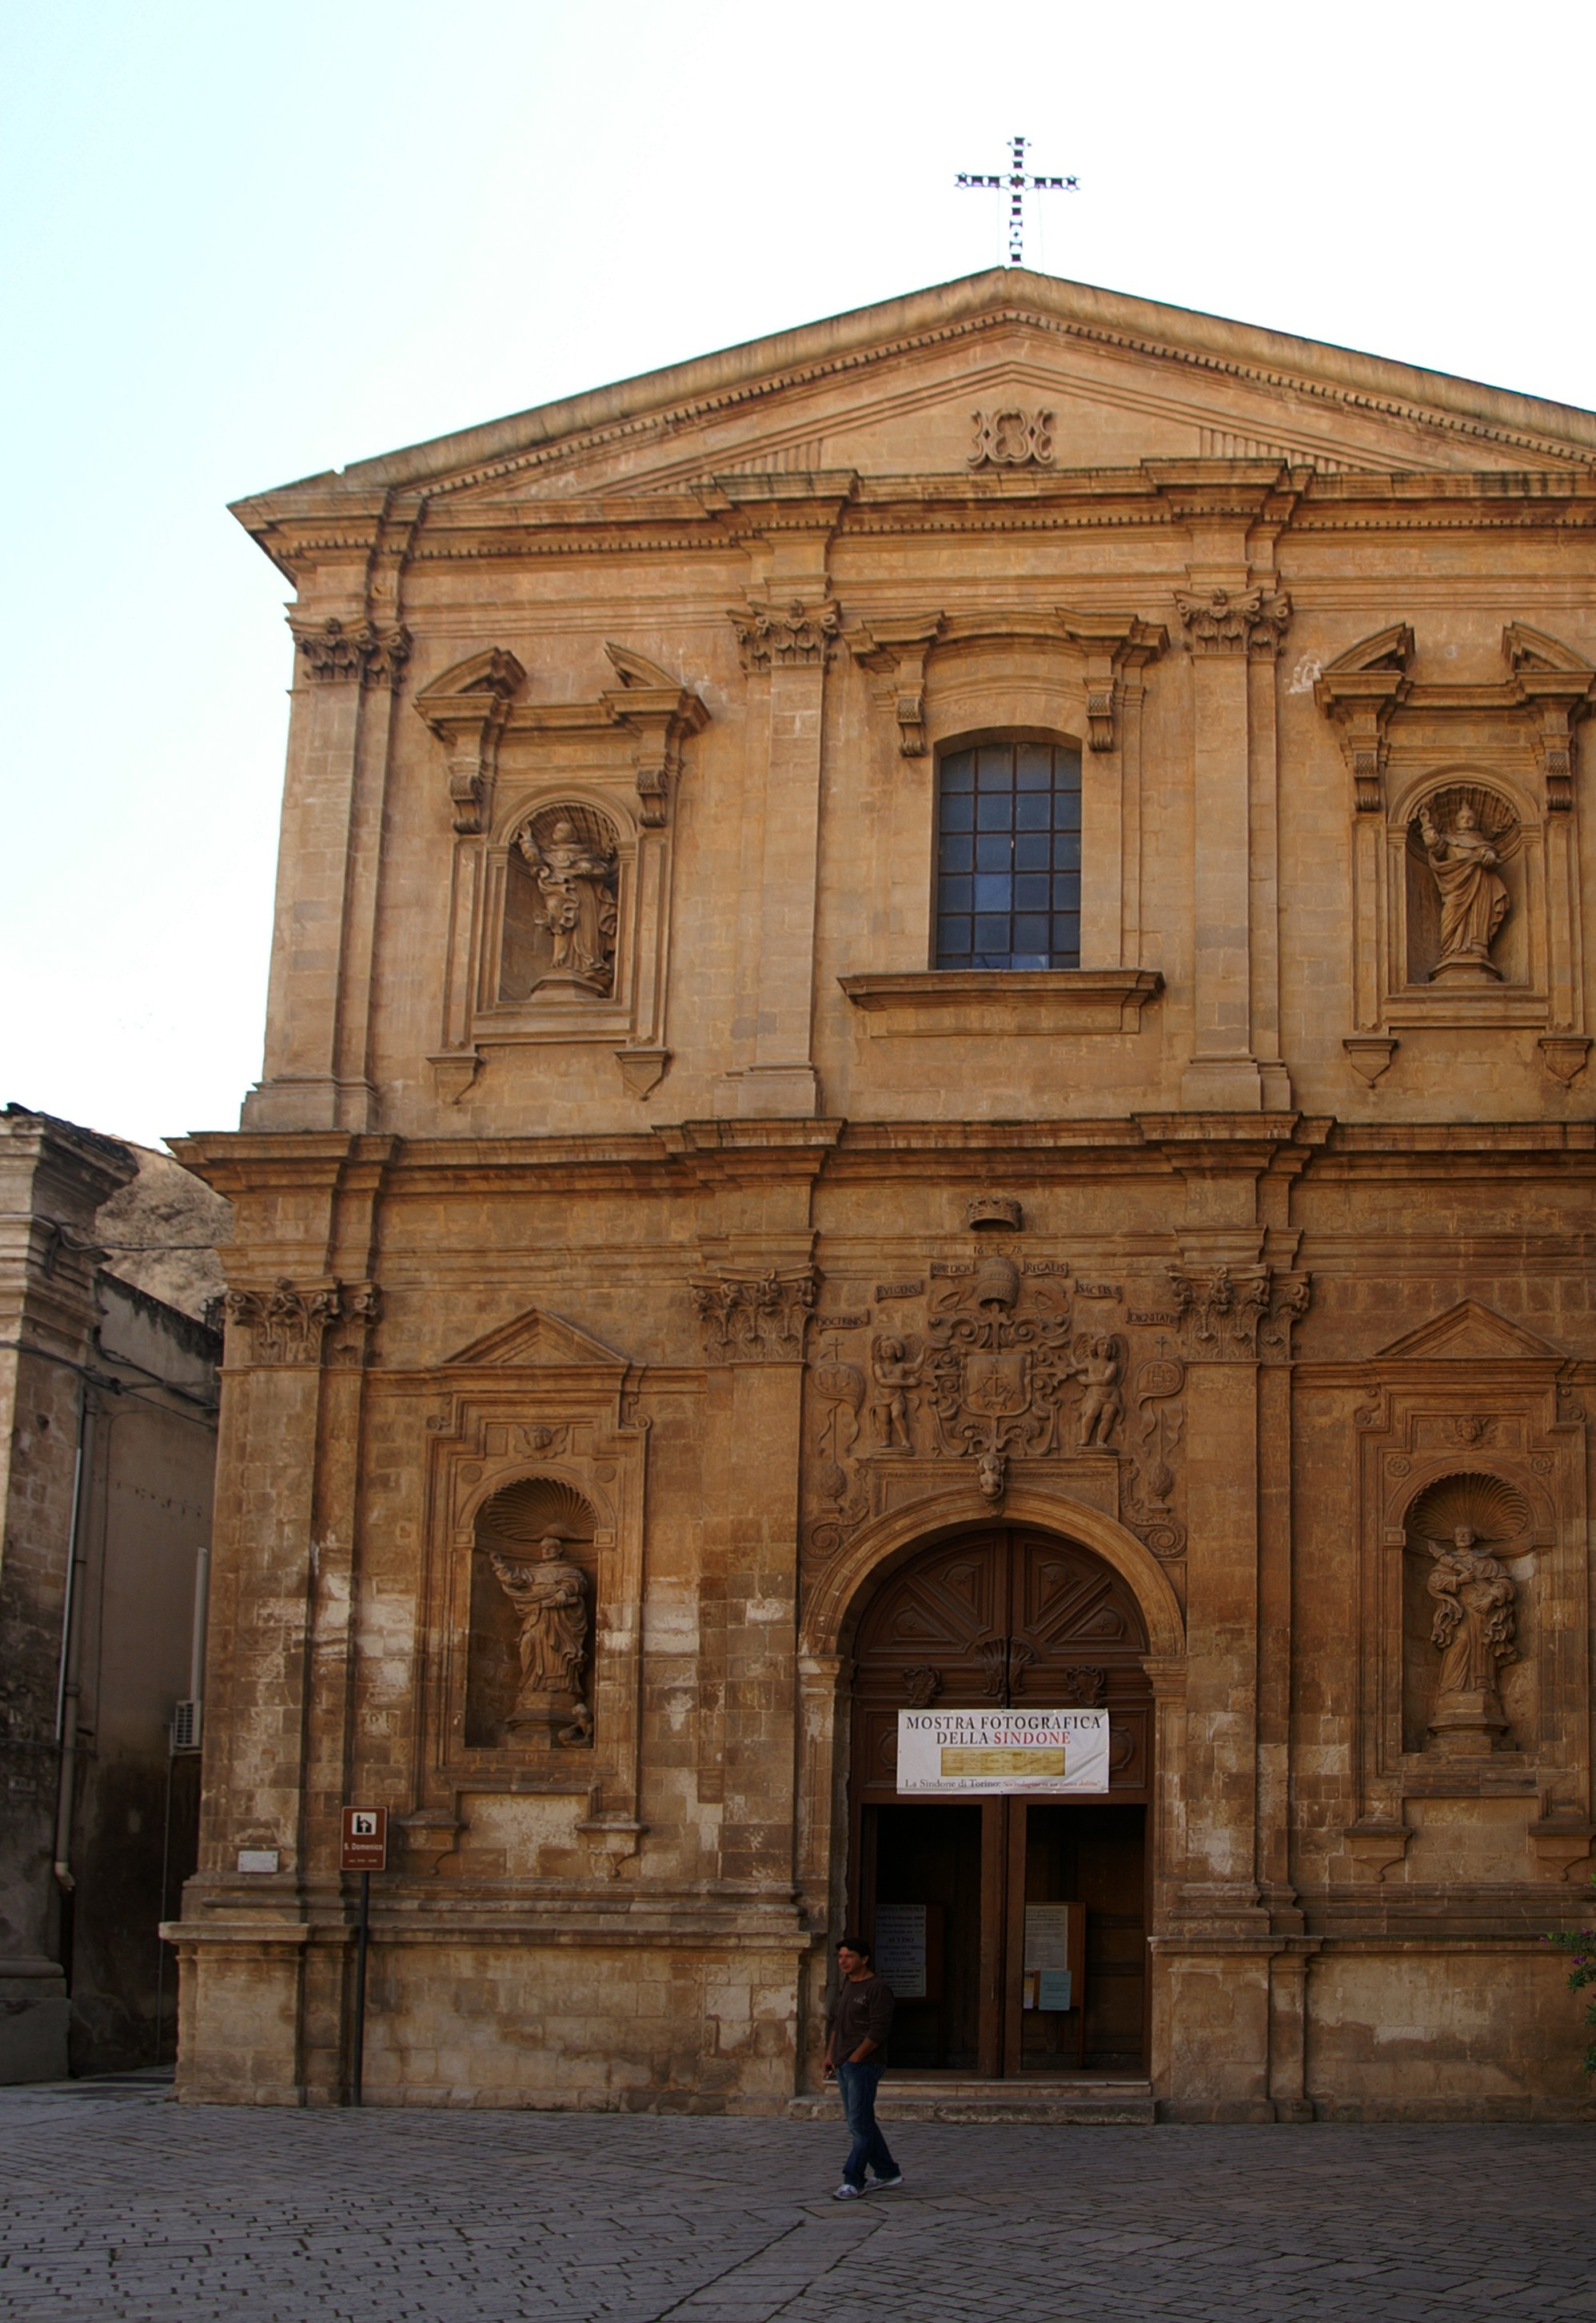 Modica-chiesa-di-s-domenico.jpeg